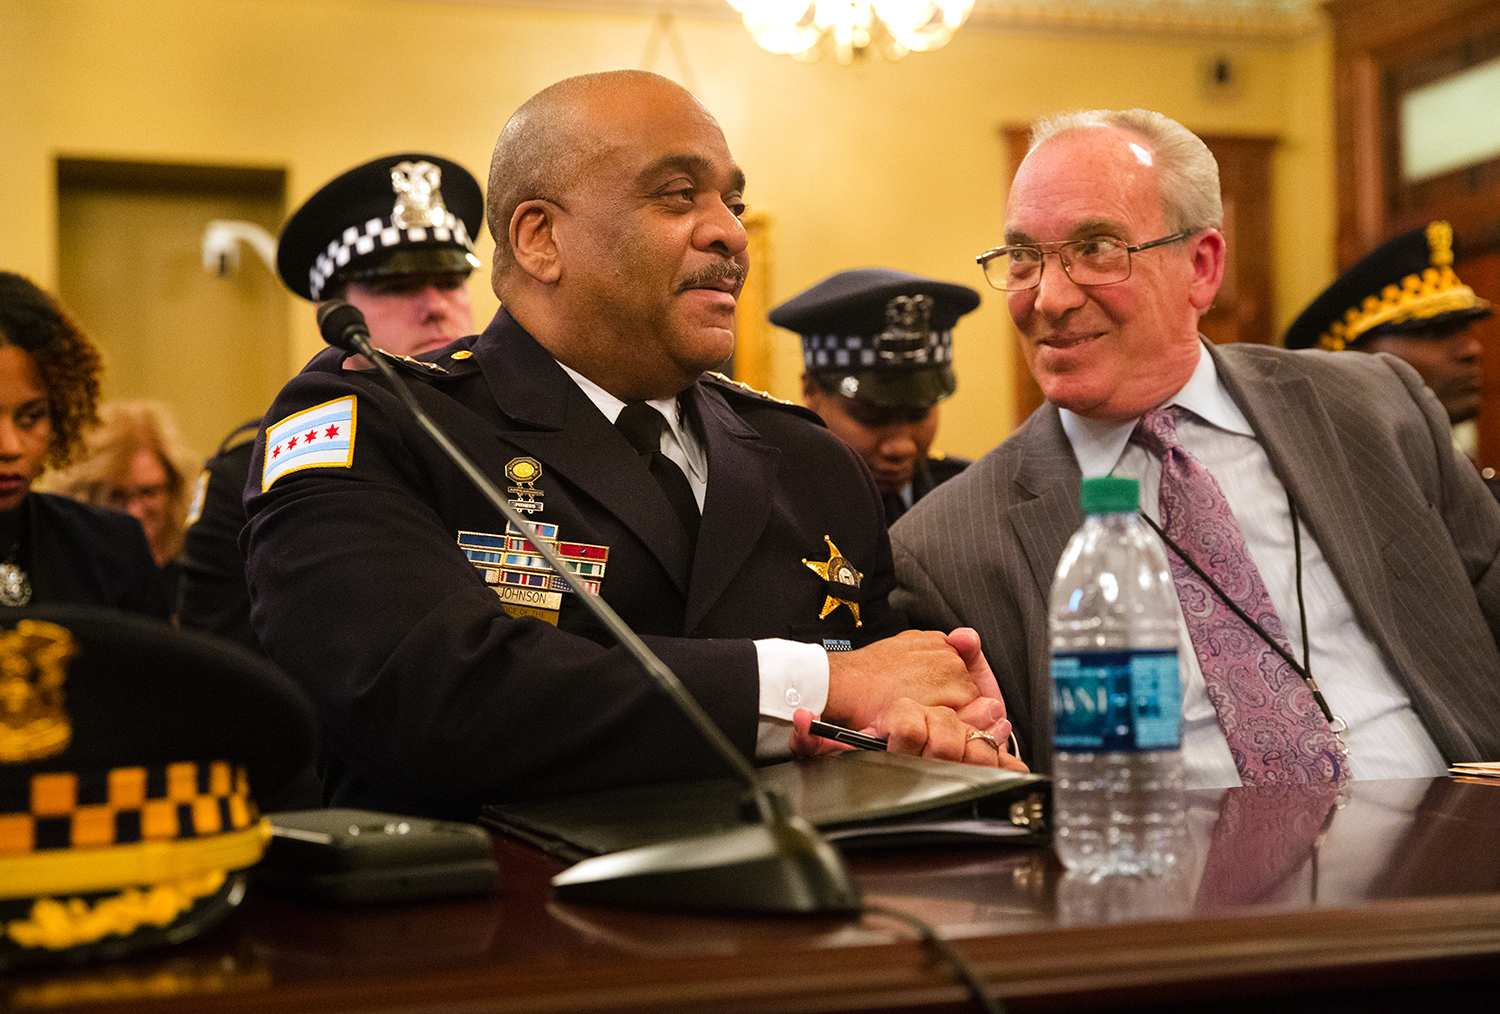 Chicago Police Superintendent Eddie Johnson shakes hands with Rep. Daniel J. Burke, D-Chicago, after new gun legislation, part of which is written and named in honor of slain 18th District Commander Paul Bauer, passed a committee Tuesday, Feb. 27, 2018. The proposed legislation seeks to ban extended gun magazines and the sale of body armor and increases penalties for civilian use of ballistic body armor. [Ted Schurter/The State Journal-Register]